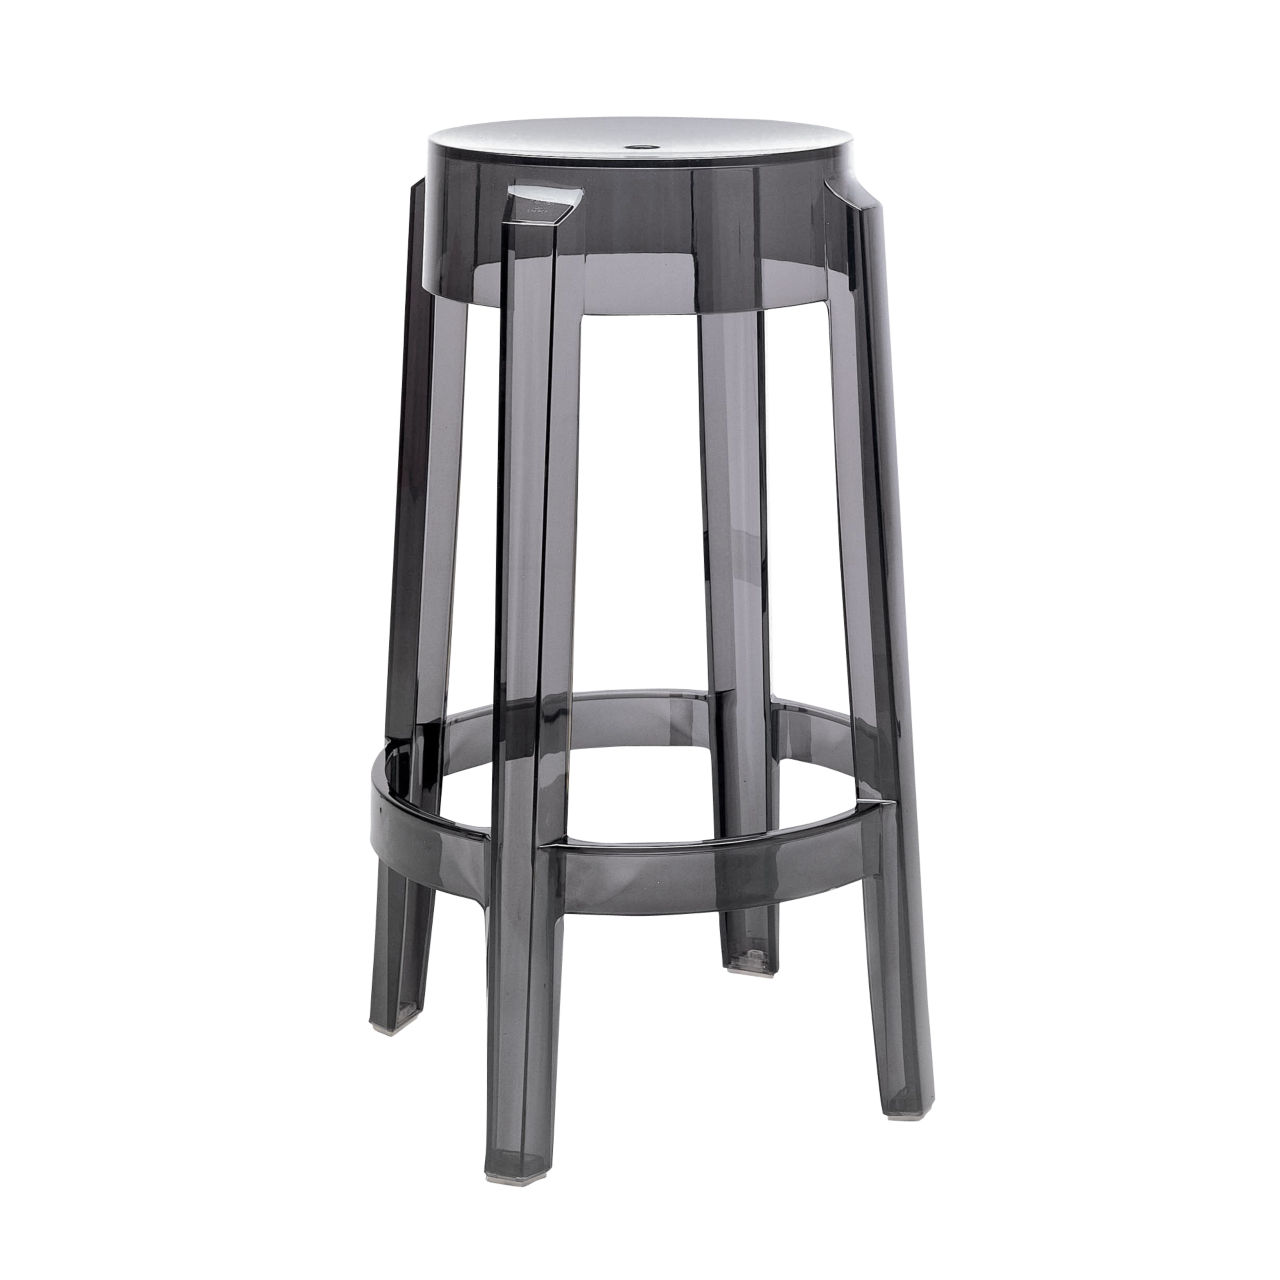 Charles Ghost Stool in Smoke Grey Large by Kartell